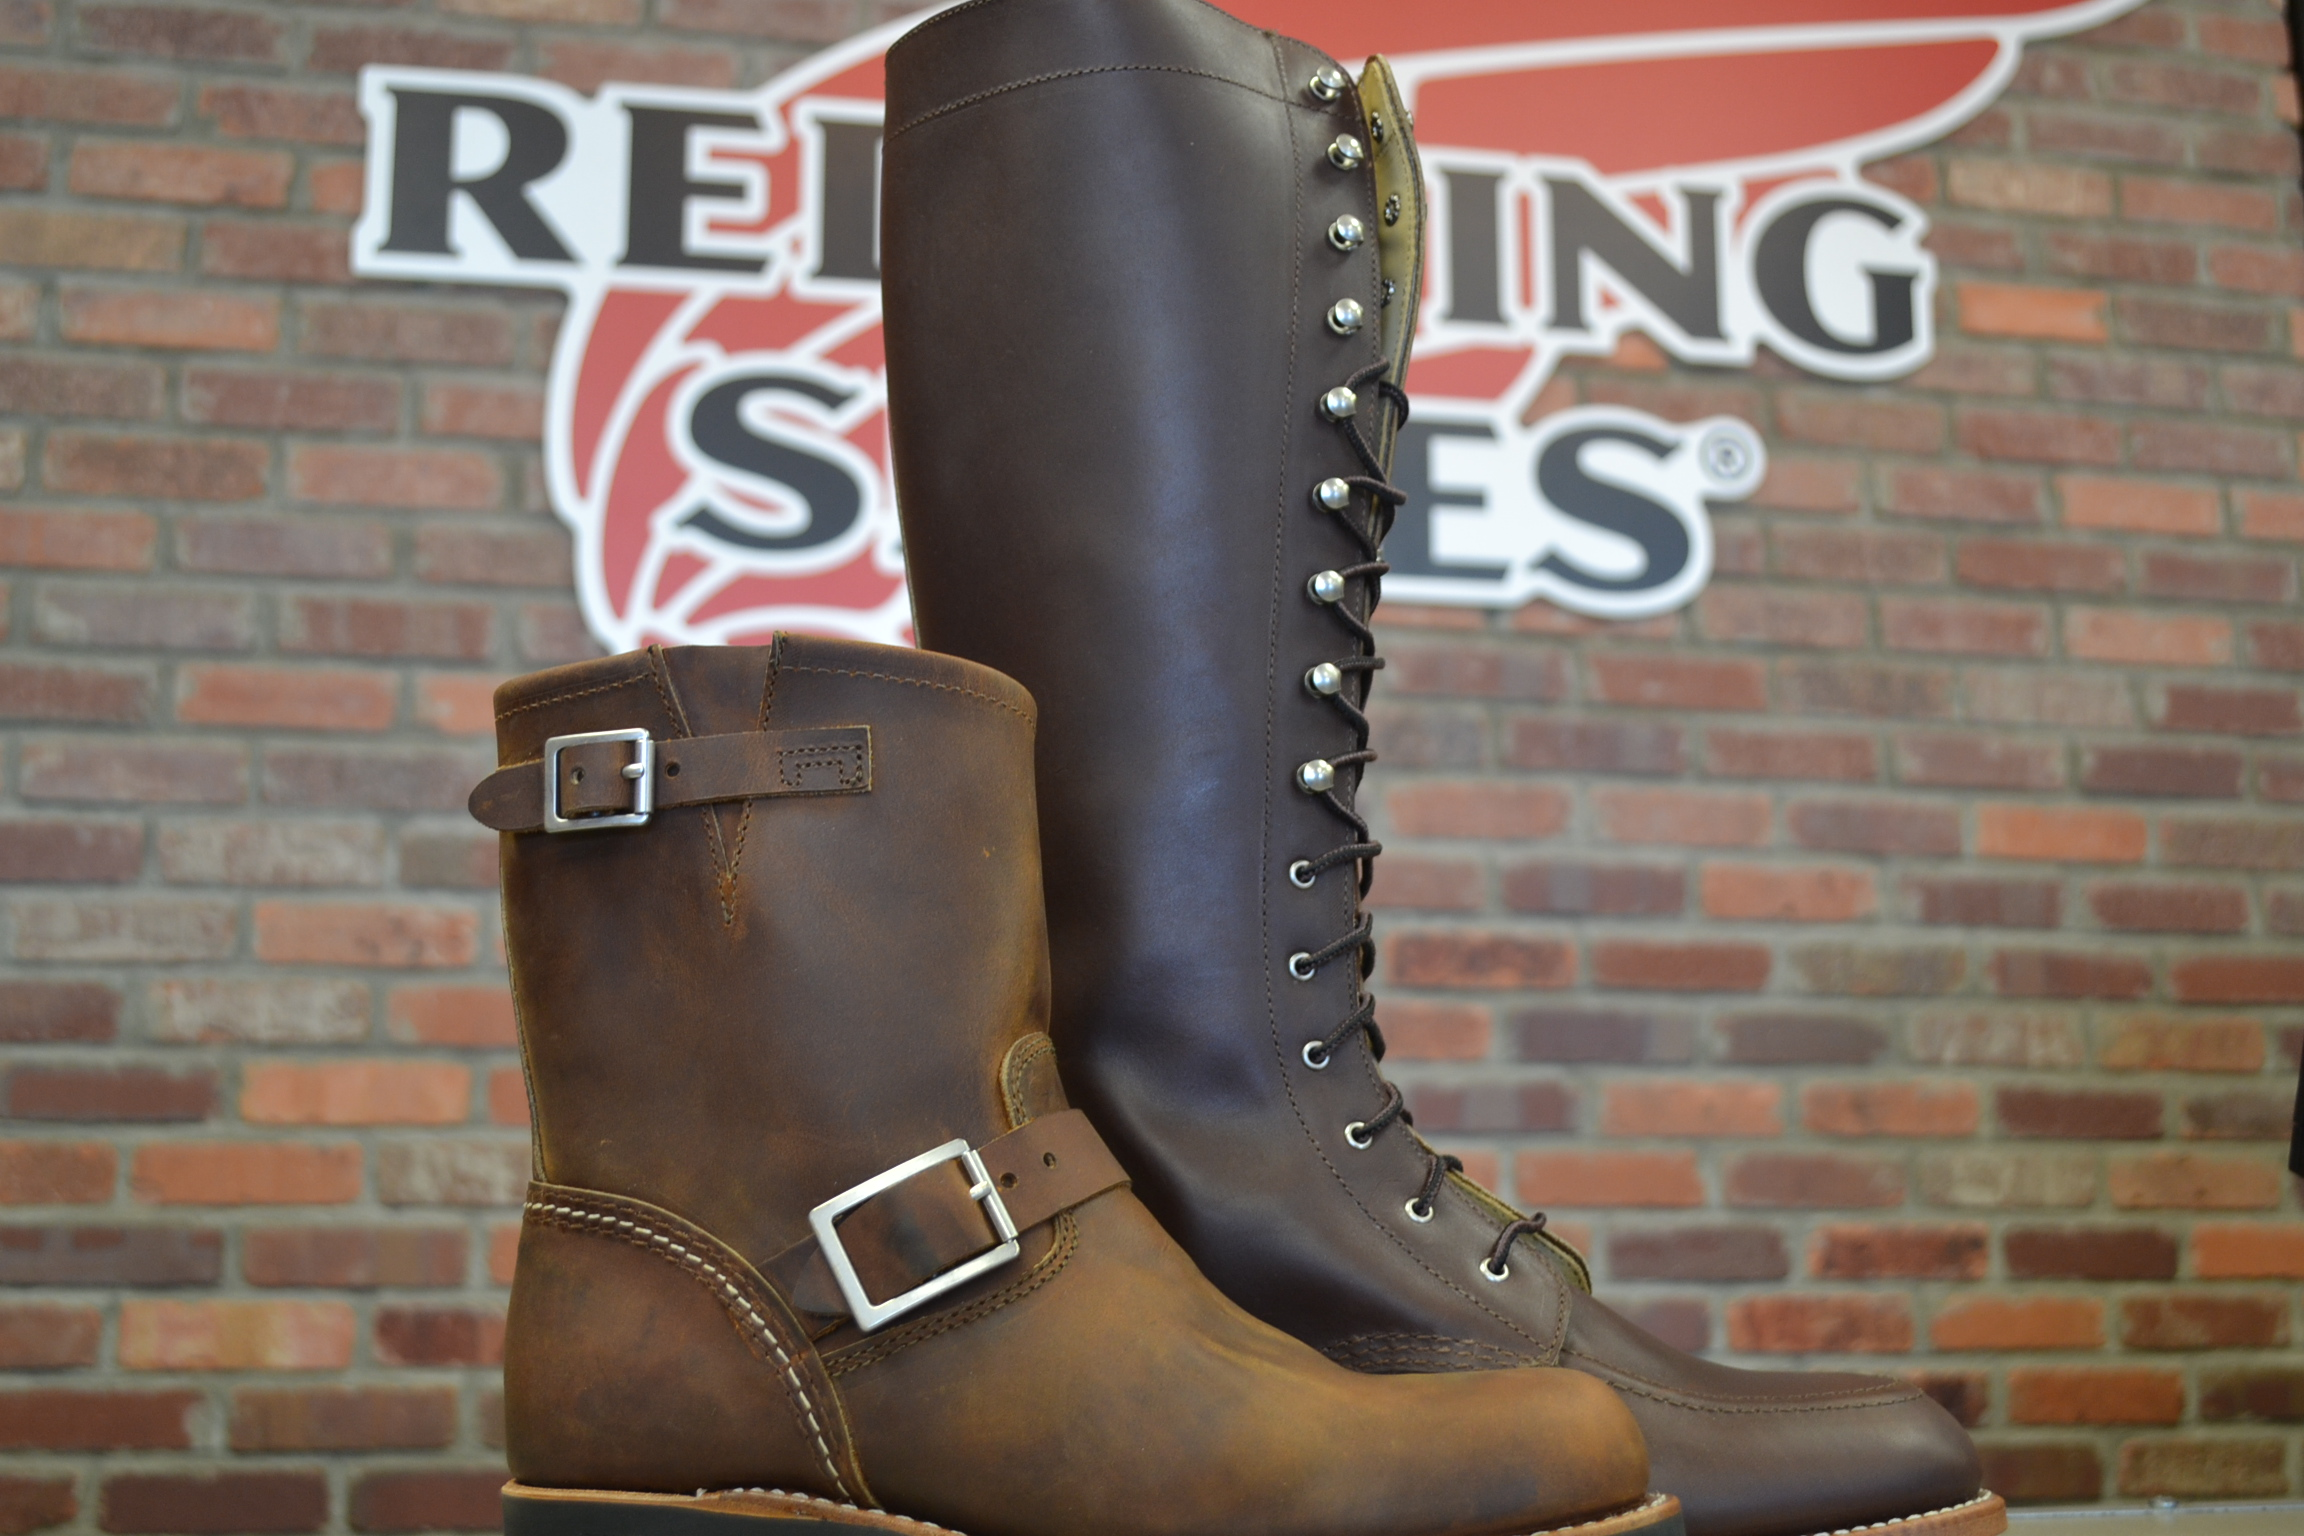 Heritage Boots Archives Cut Engineer Classic Shoes Iron Safety Leather Dark Brown Featuring Nickel Eyelets And Hooks This Boot Is Instantly Recognizable Yet Entirely Distinct Check Out The Gallery Below For Some Pics Of Amazing